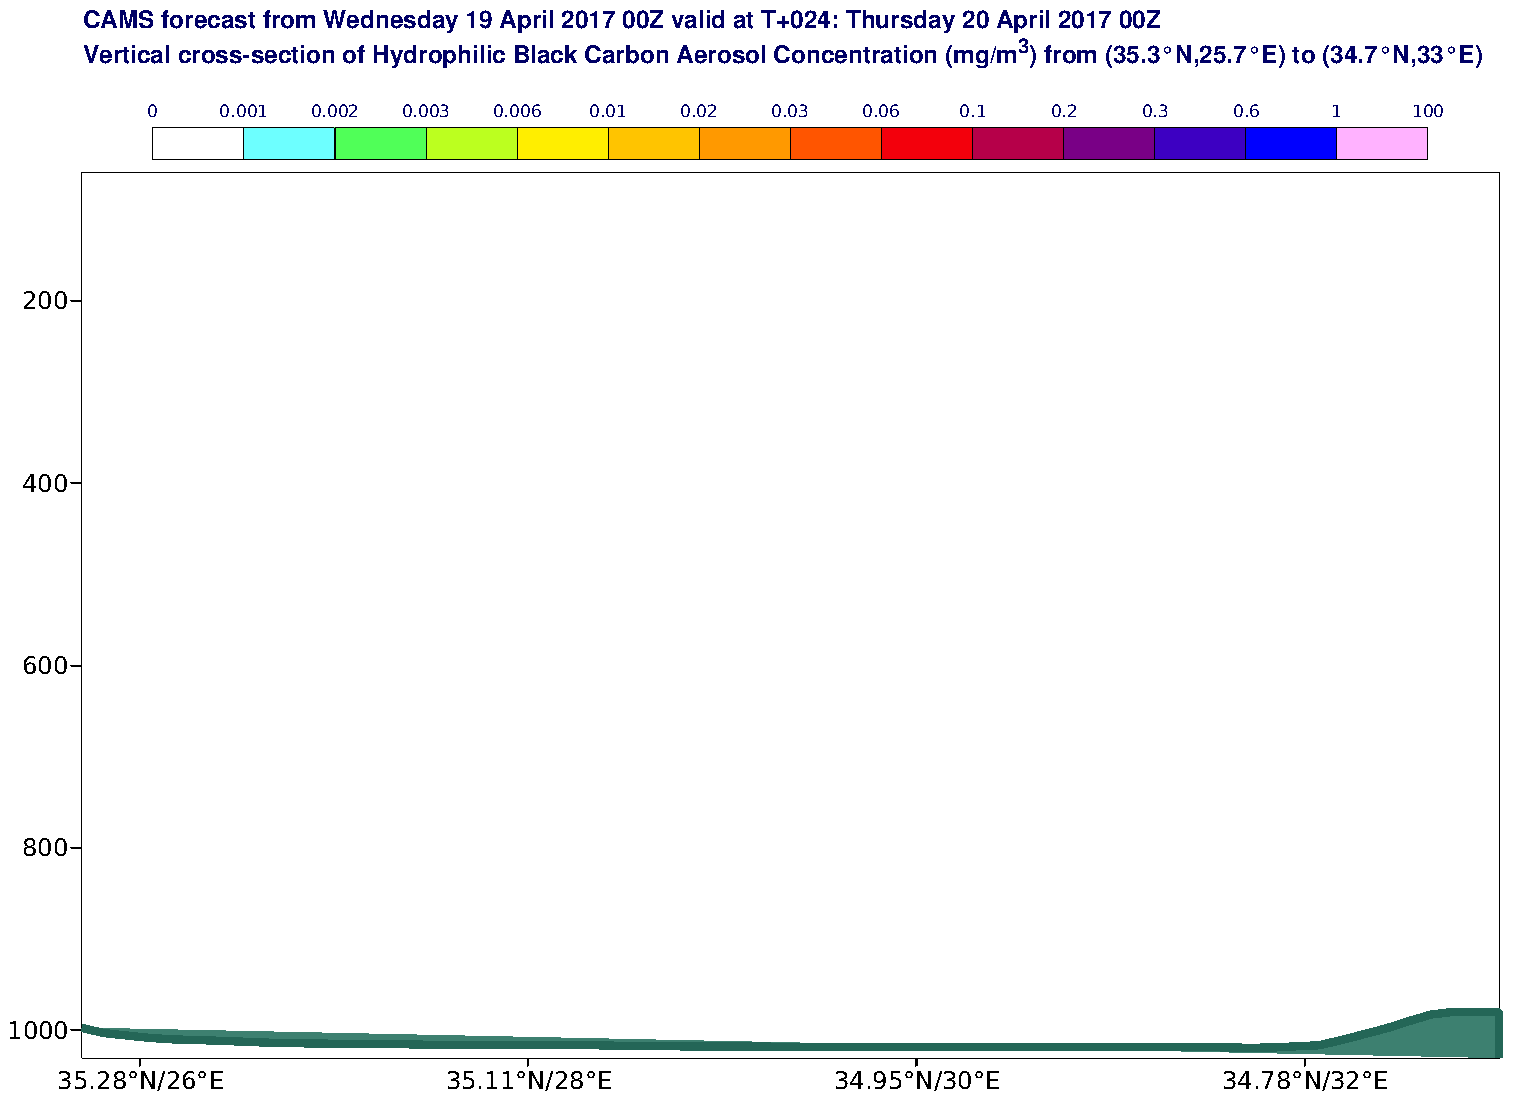 Vertical cross-section of Hydrophilic Black Carbon Aerosol Concentration (mg/m3) valid at T24 - 2017-04-20 00:00